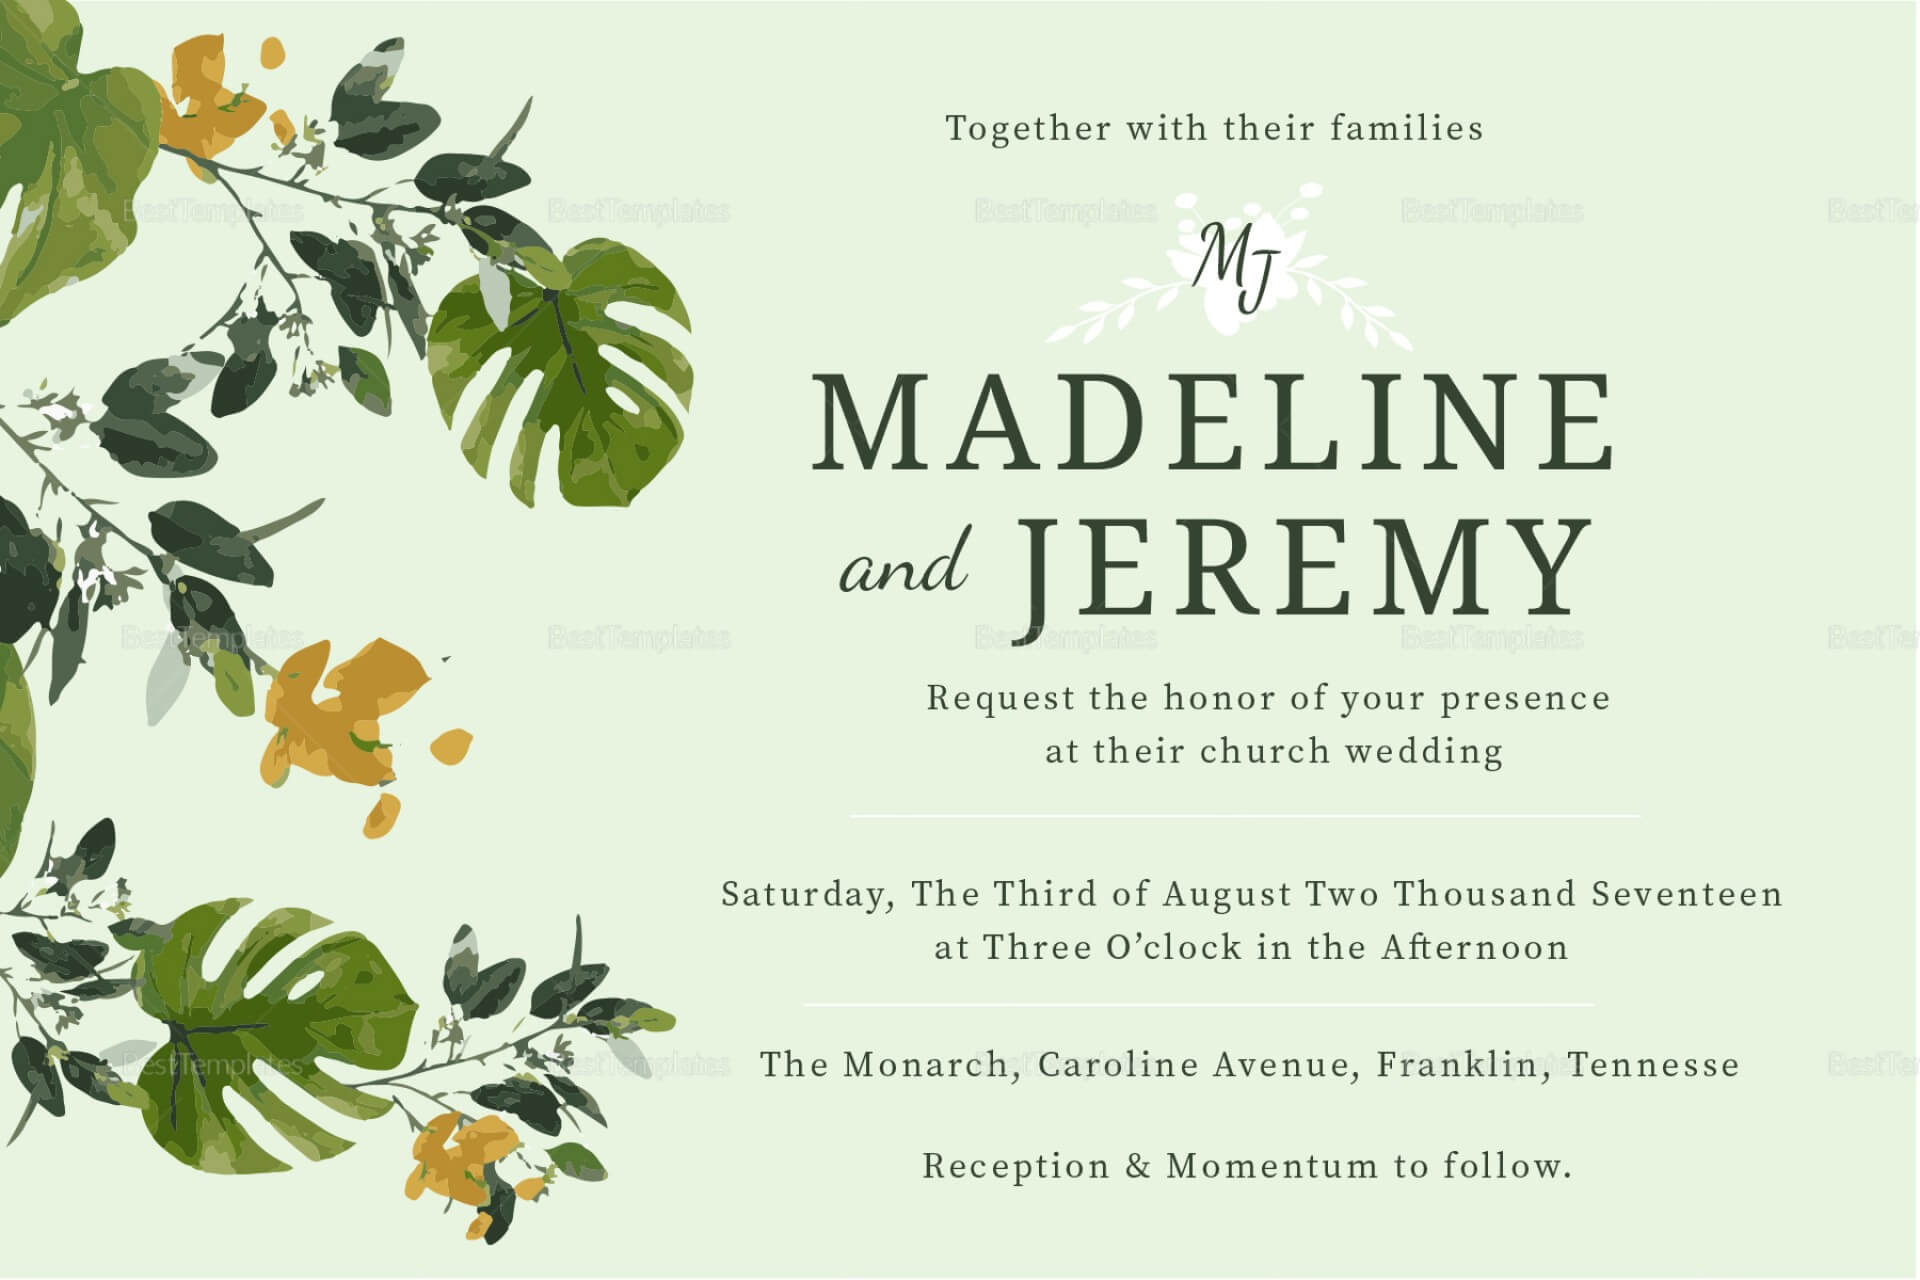 035 Vintage Baroque Style Wedding Invitation Card Template Regarding Church Wedding Invitation Card Template